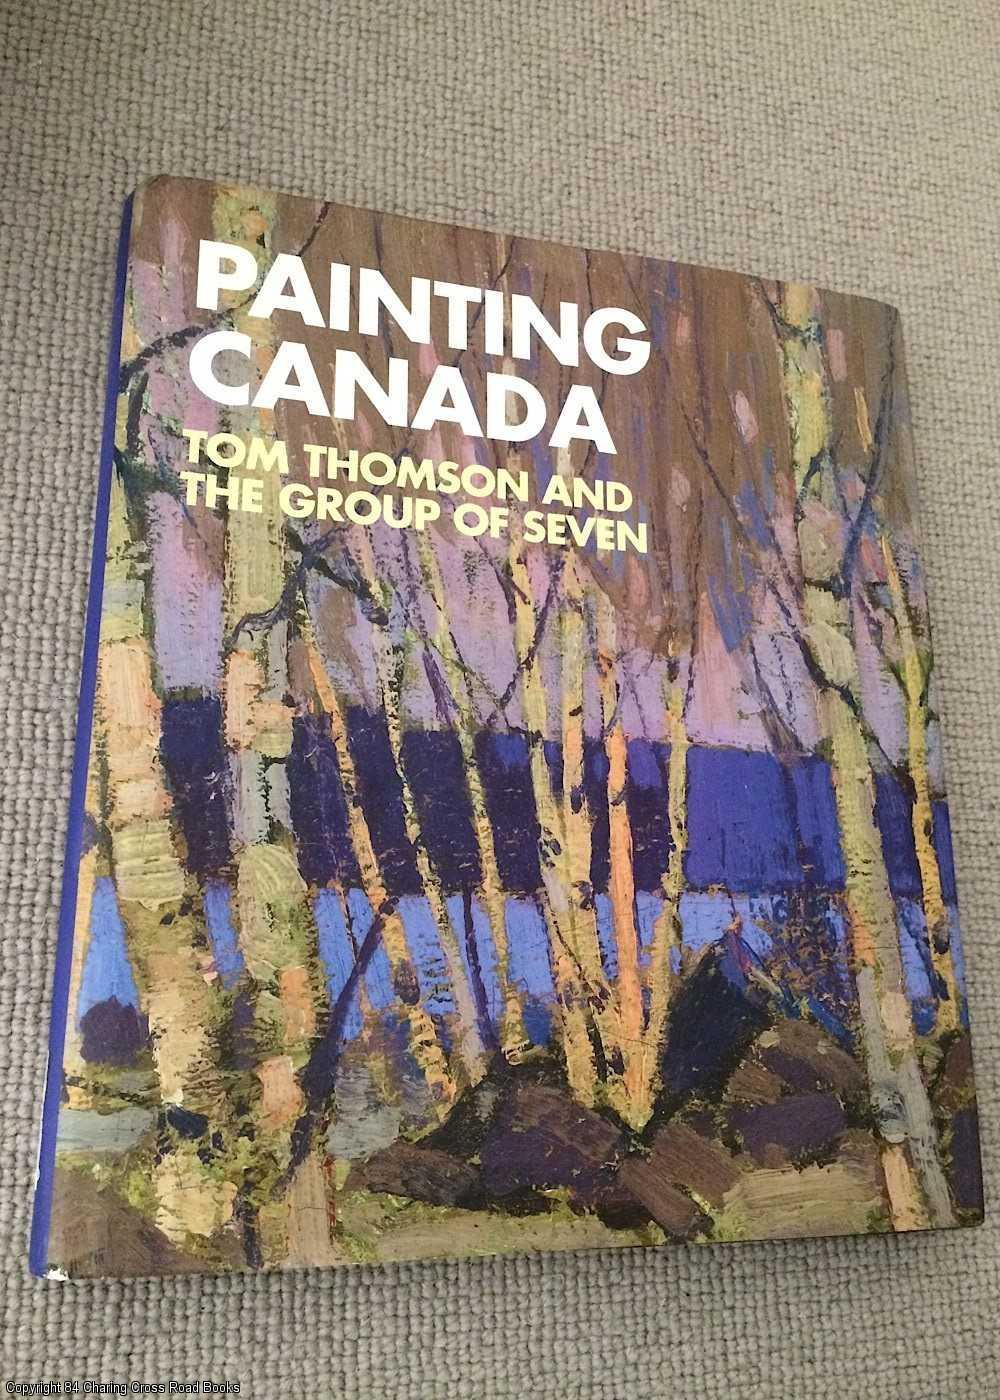 DEJARDIN, IAN A. C. - Painting Canada: Tom Thomson and the Group of Seven